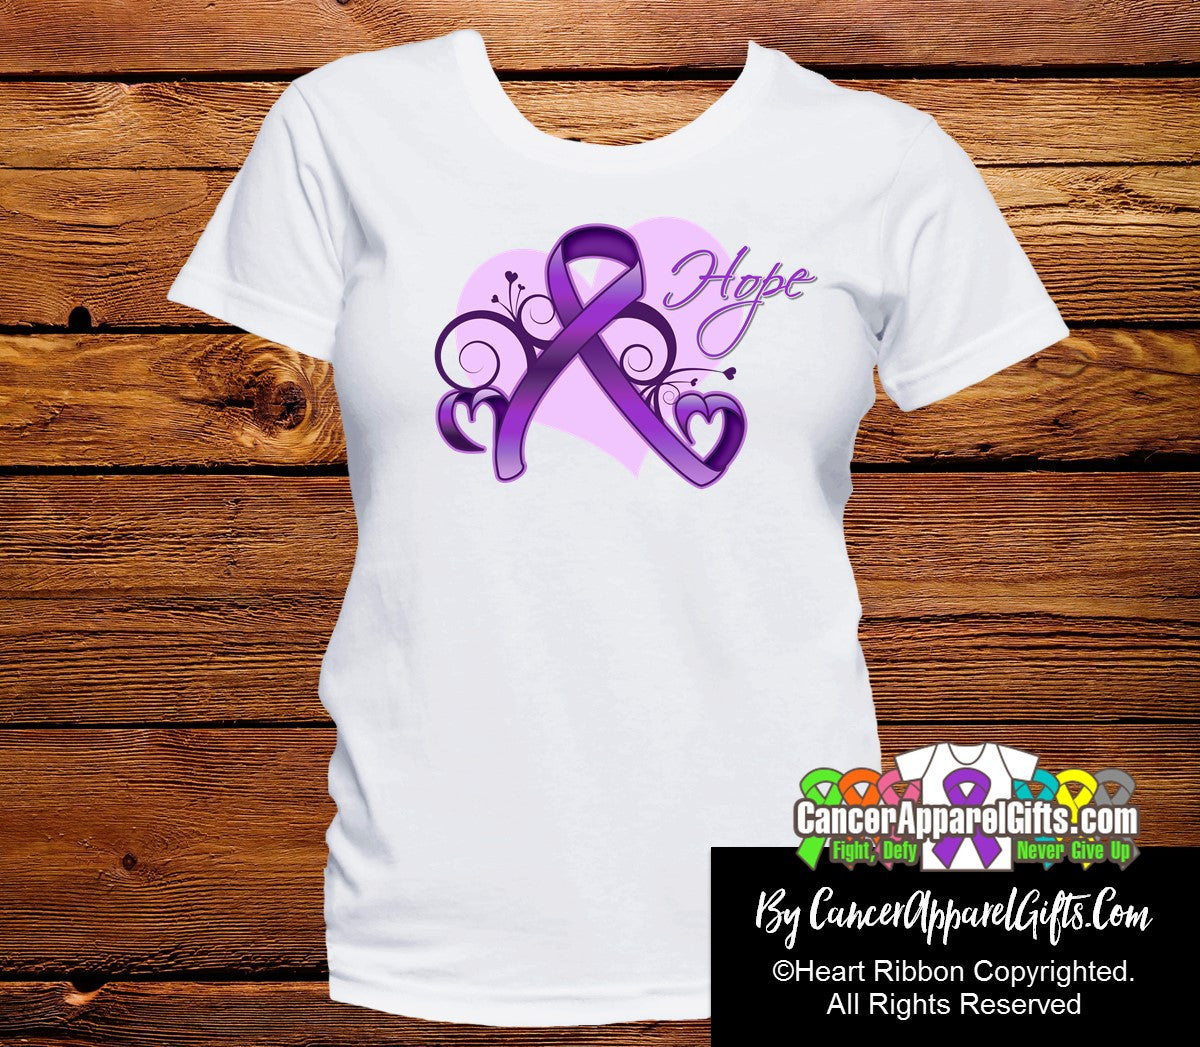 Pancreatic Cancer Heart of Hope Ribbon Shirts - Cancer Apparel and Gifts